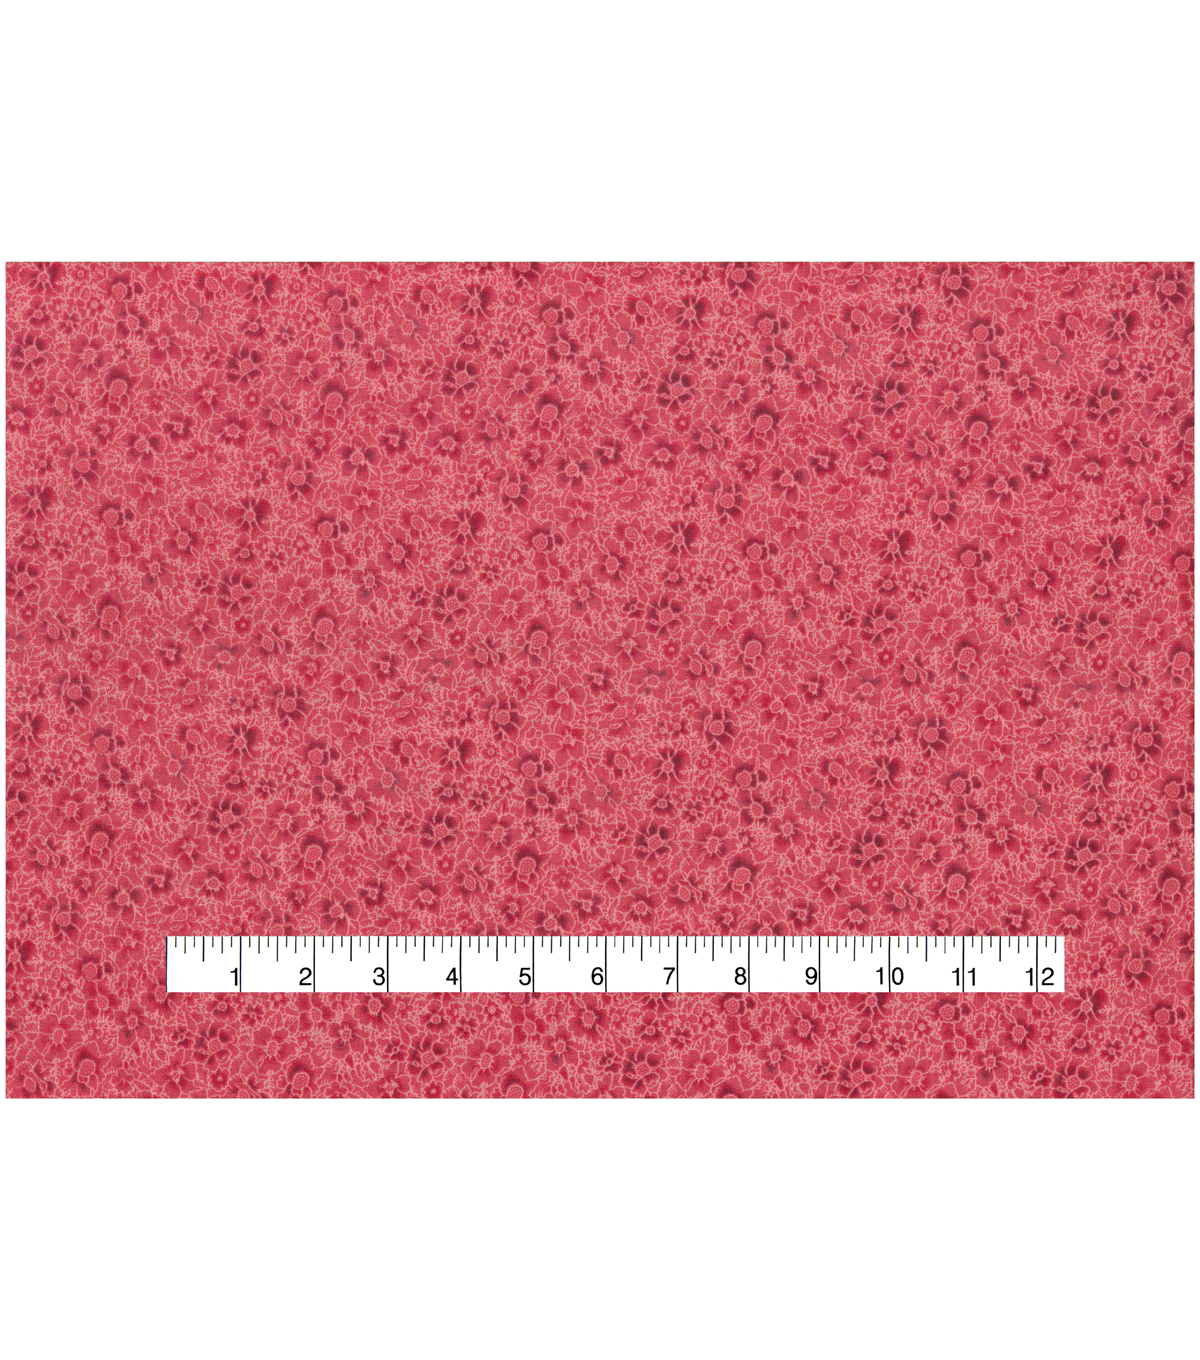 Keepsake Calico Cotton Fabric -Red Packed Flowers